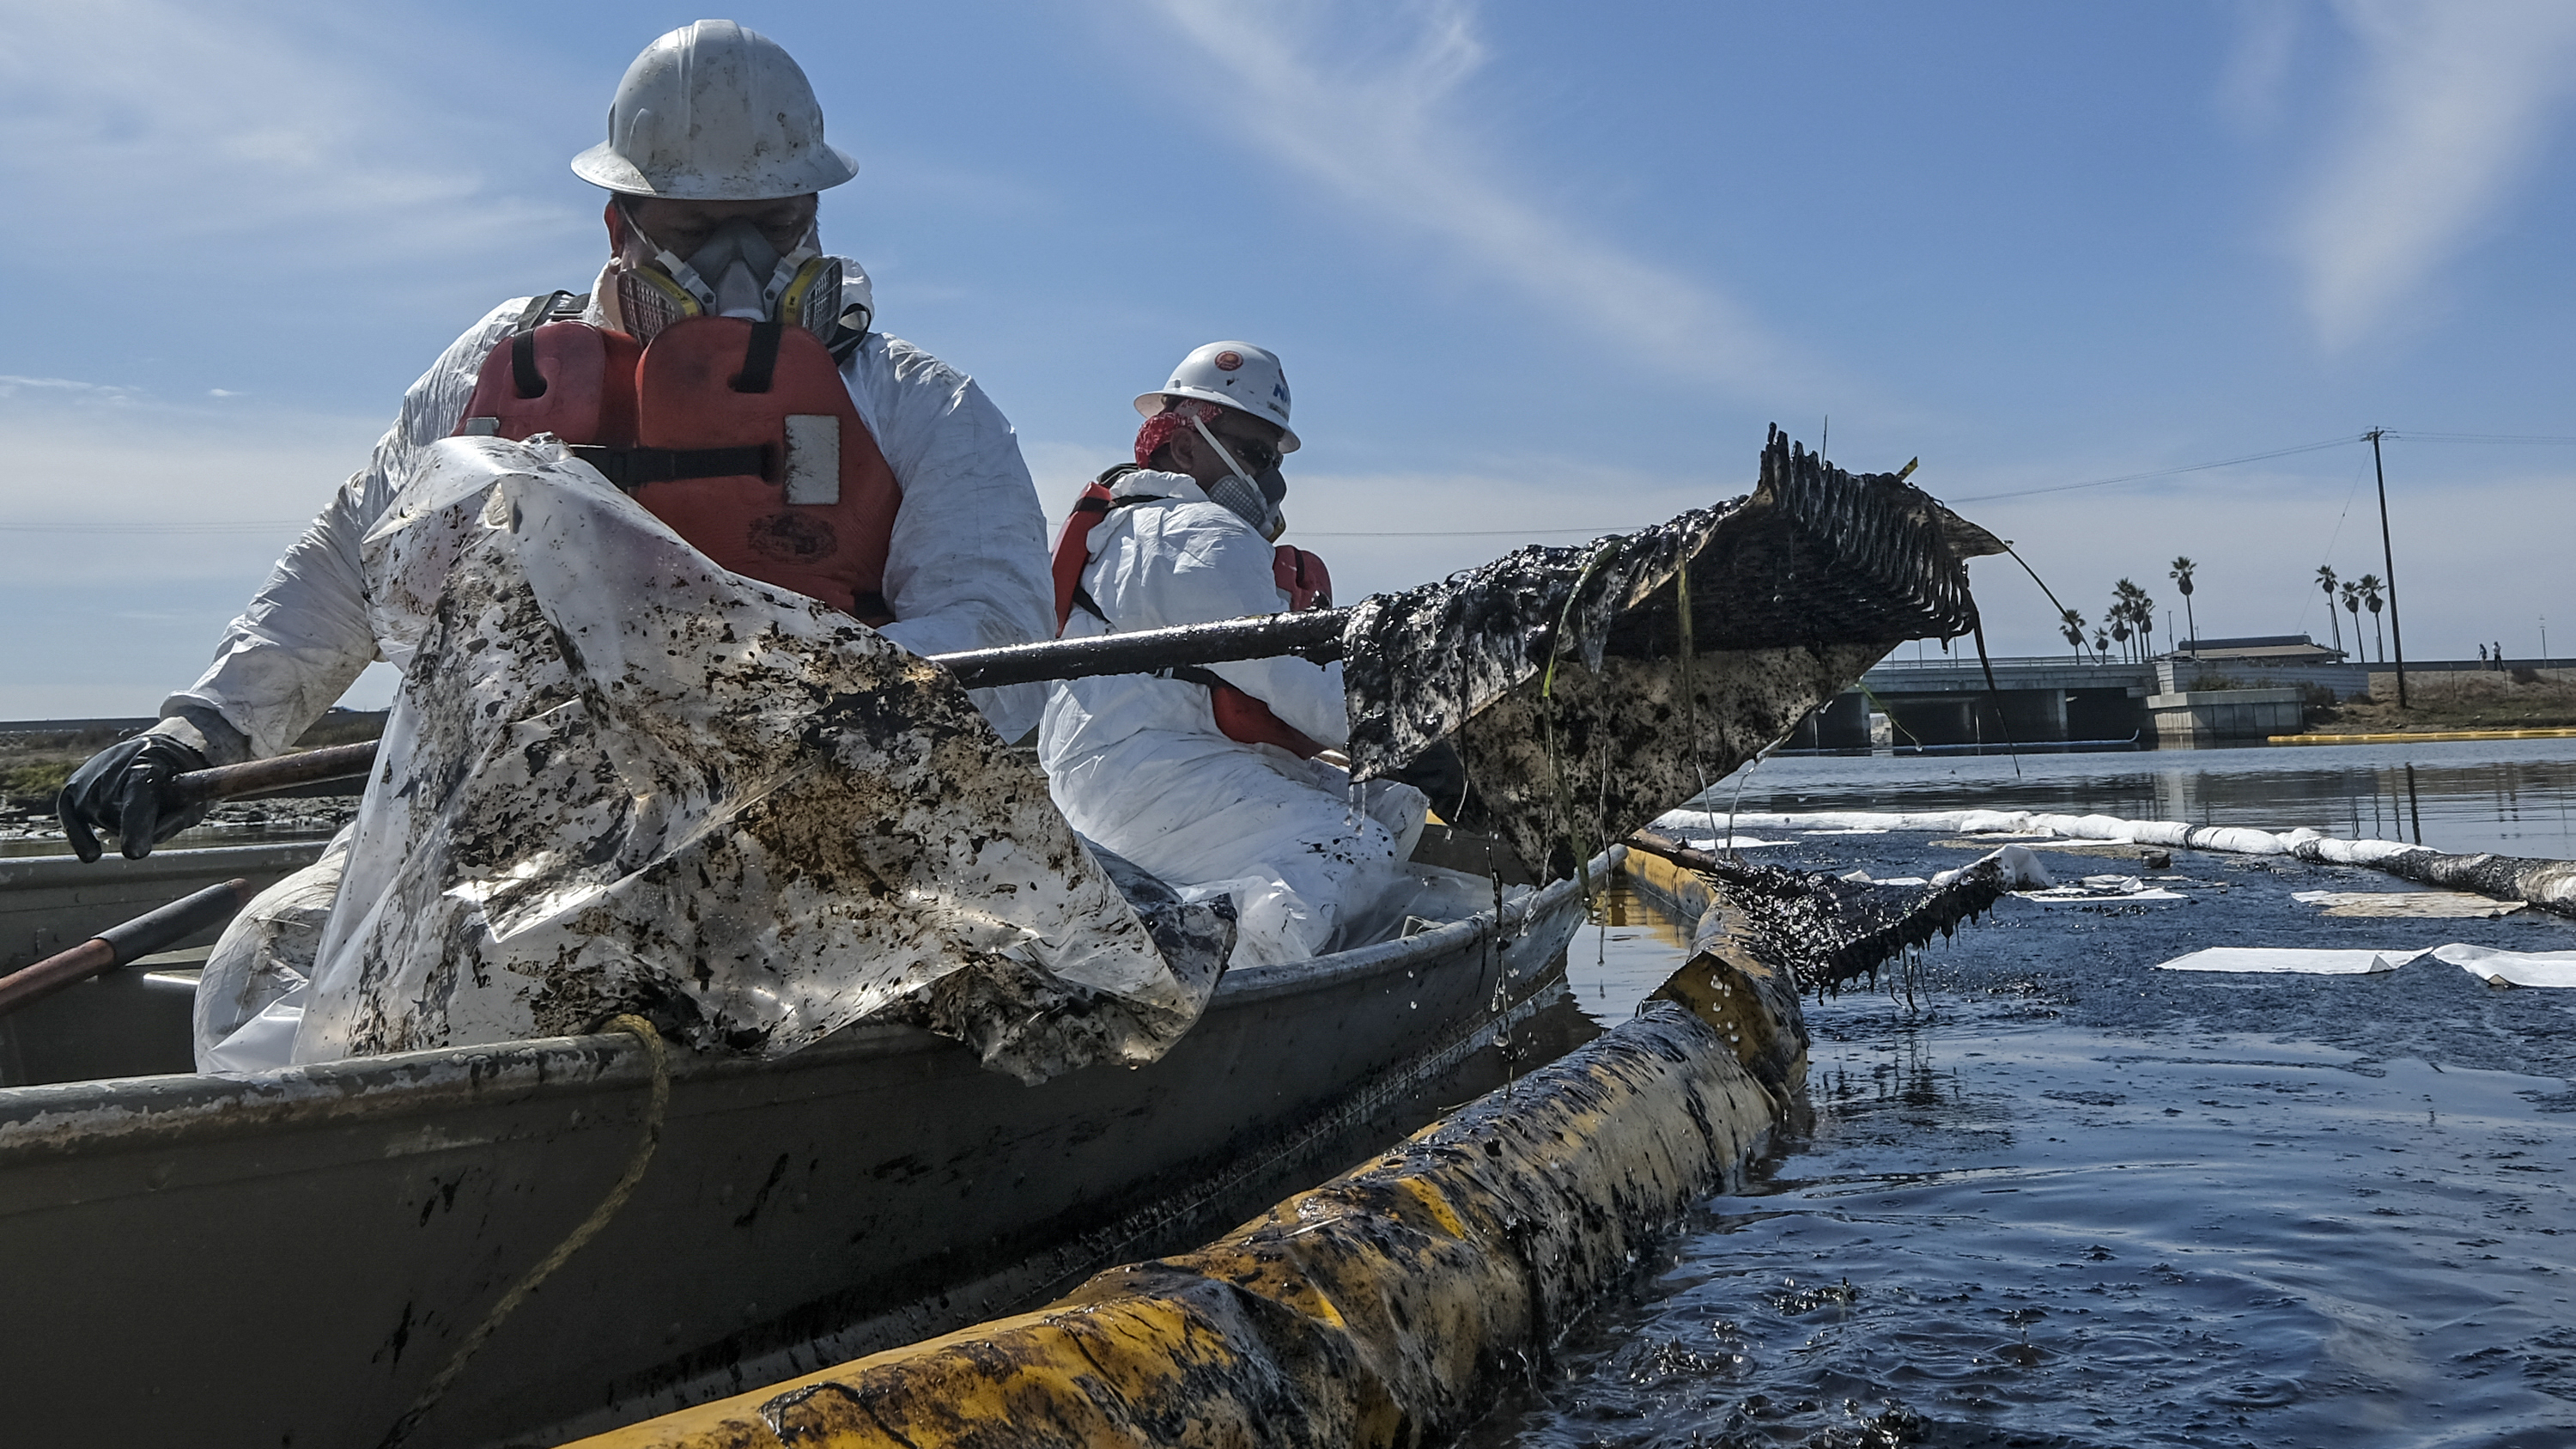 Cleanup contractors deploy skimmers and floating barriers known as booms to try to stop further crude oil incursion into Talbert Marsh in Huntington Beach, Calif., on Oct. 3 after an oil spill off the Southern California coast.